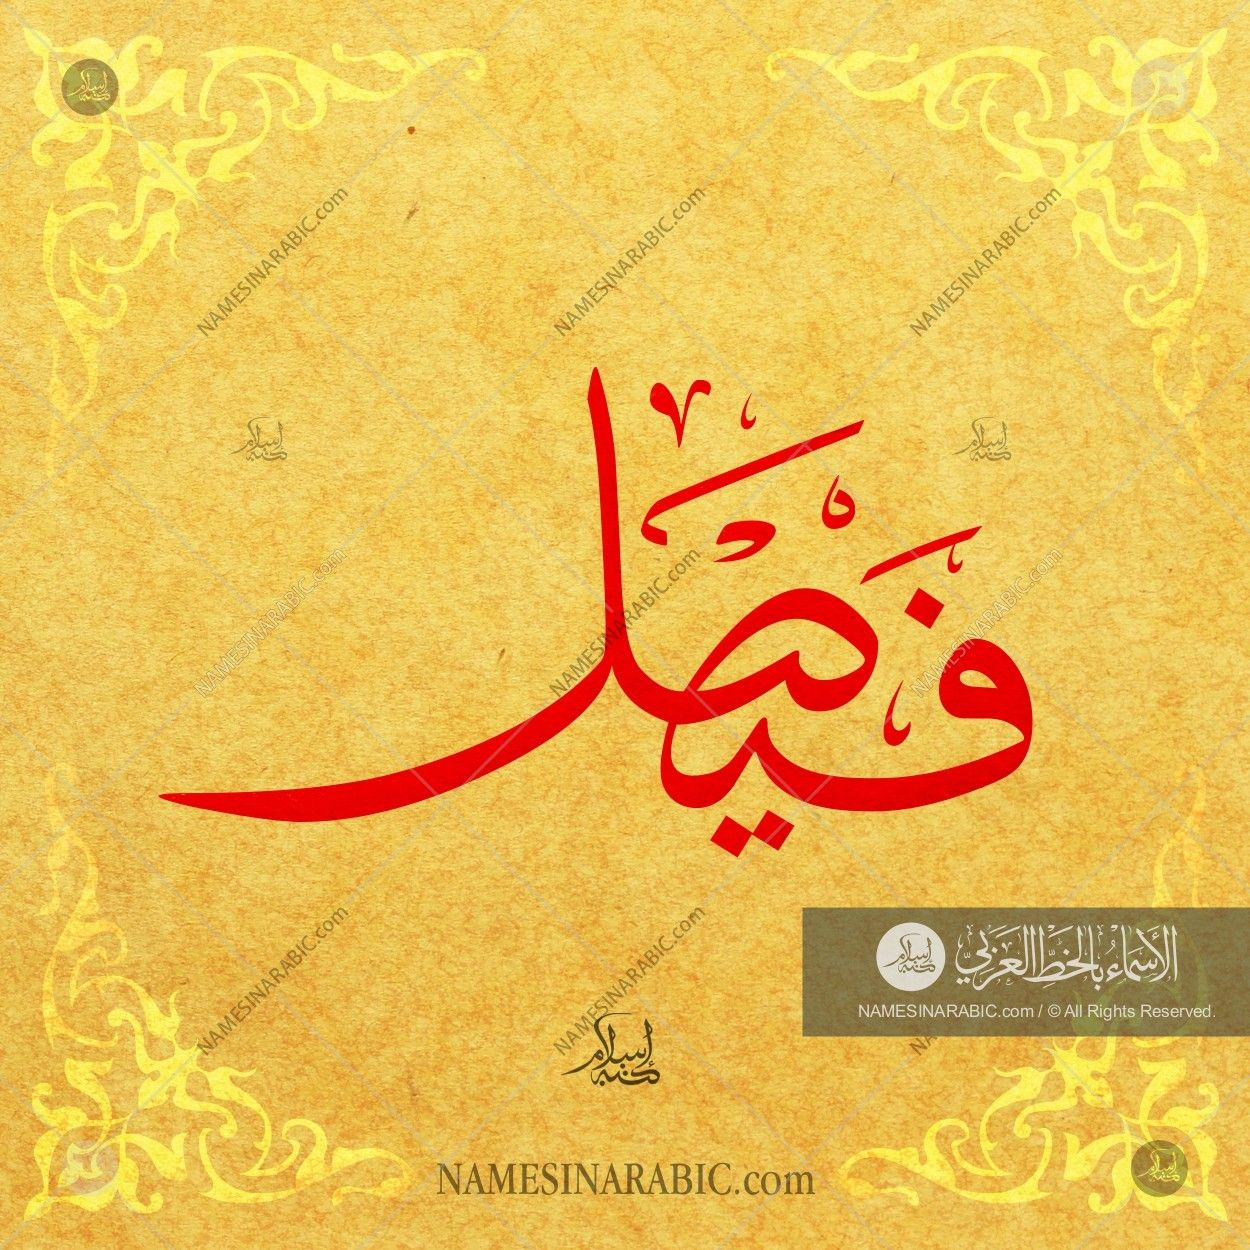 Faisal فيصل Names In Arabic Calligraphy Name 7600 Alphabet Letters Design Arabic Calligraphy Design Calligraphy Name